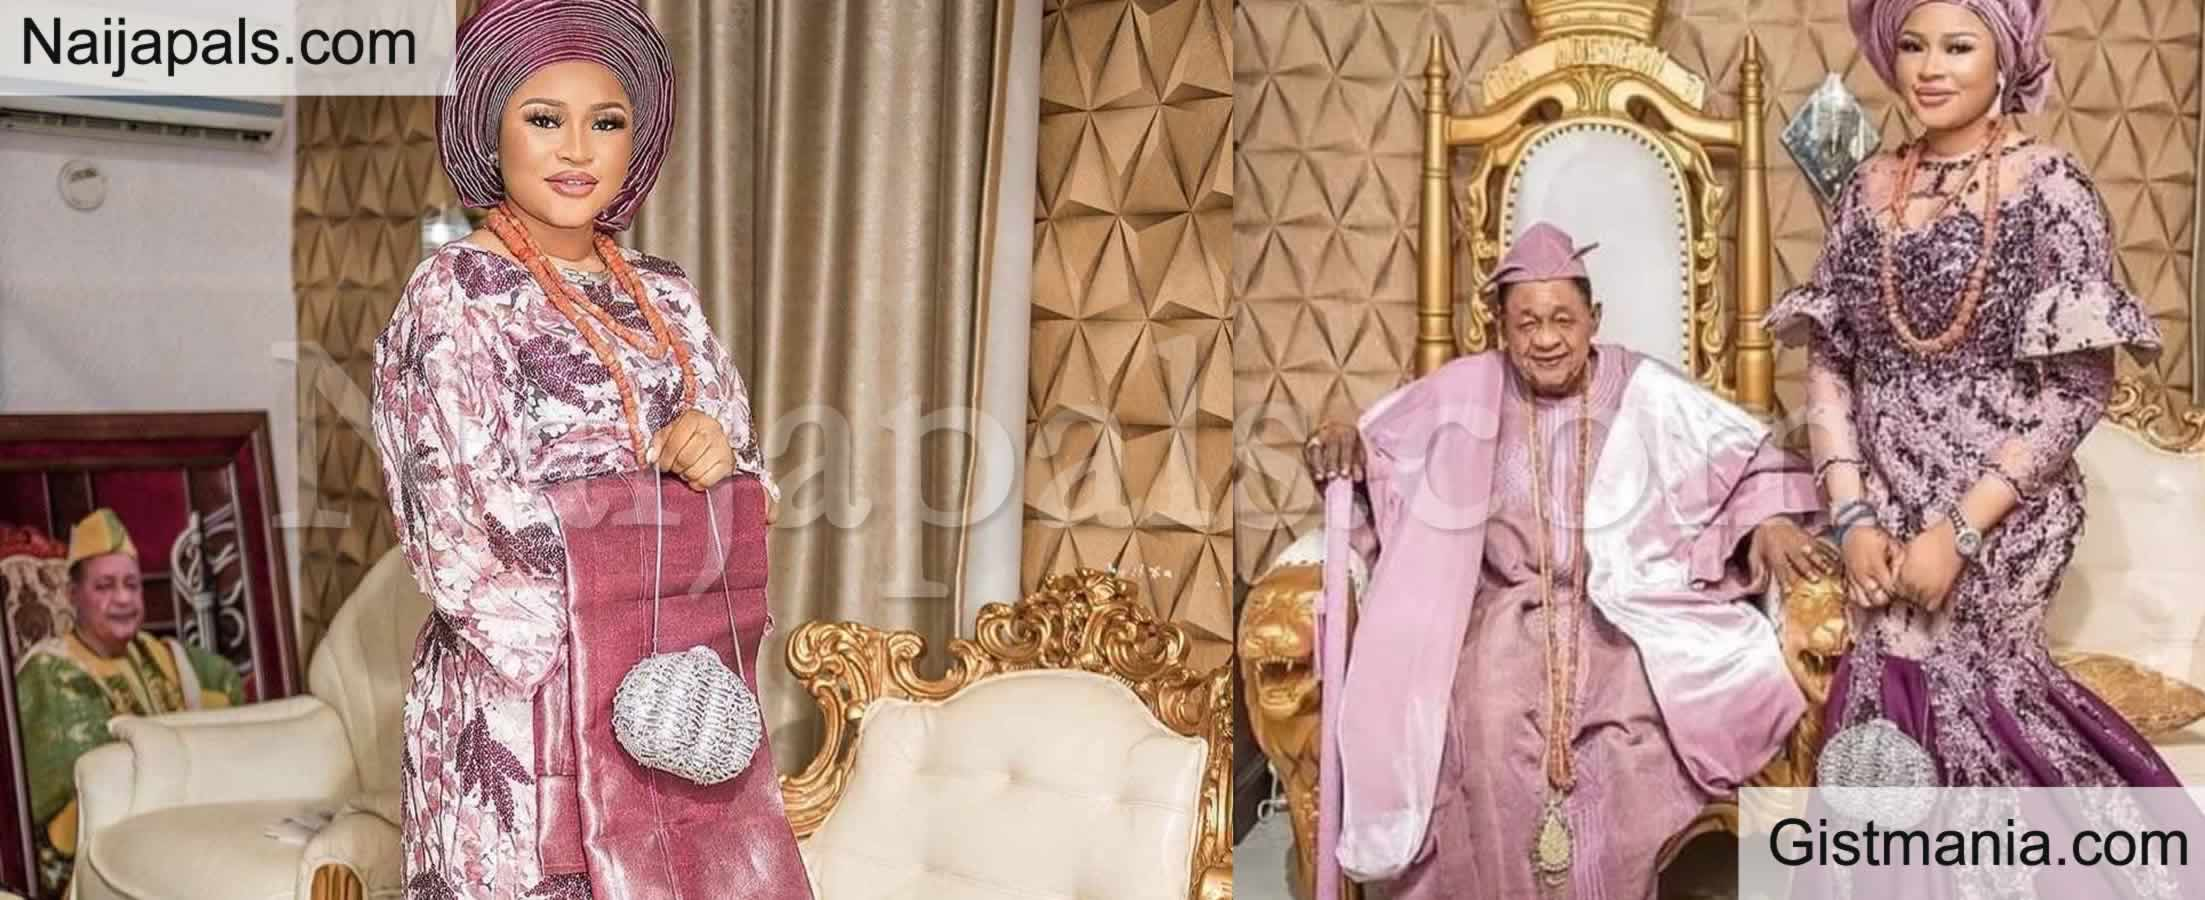 <img alt='.' class='lazyload' data-src='https://img.gistmania.com/emot/photo.png' /> <b>Alaafin Of Oyo, Oba Lamidi Adeyemi III Marries A New Bride</b> (PHOTOS)